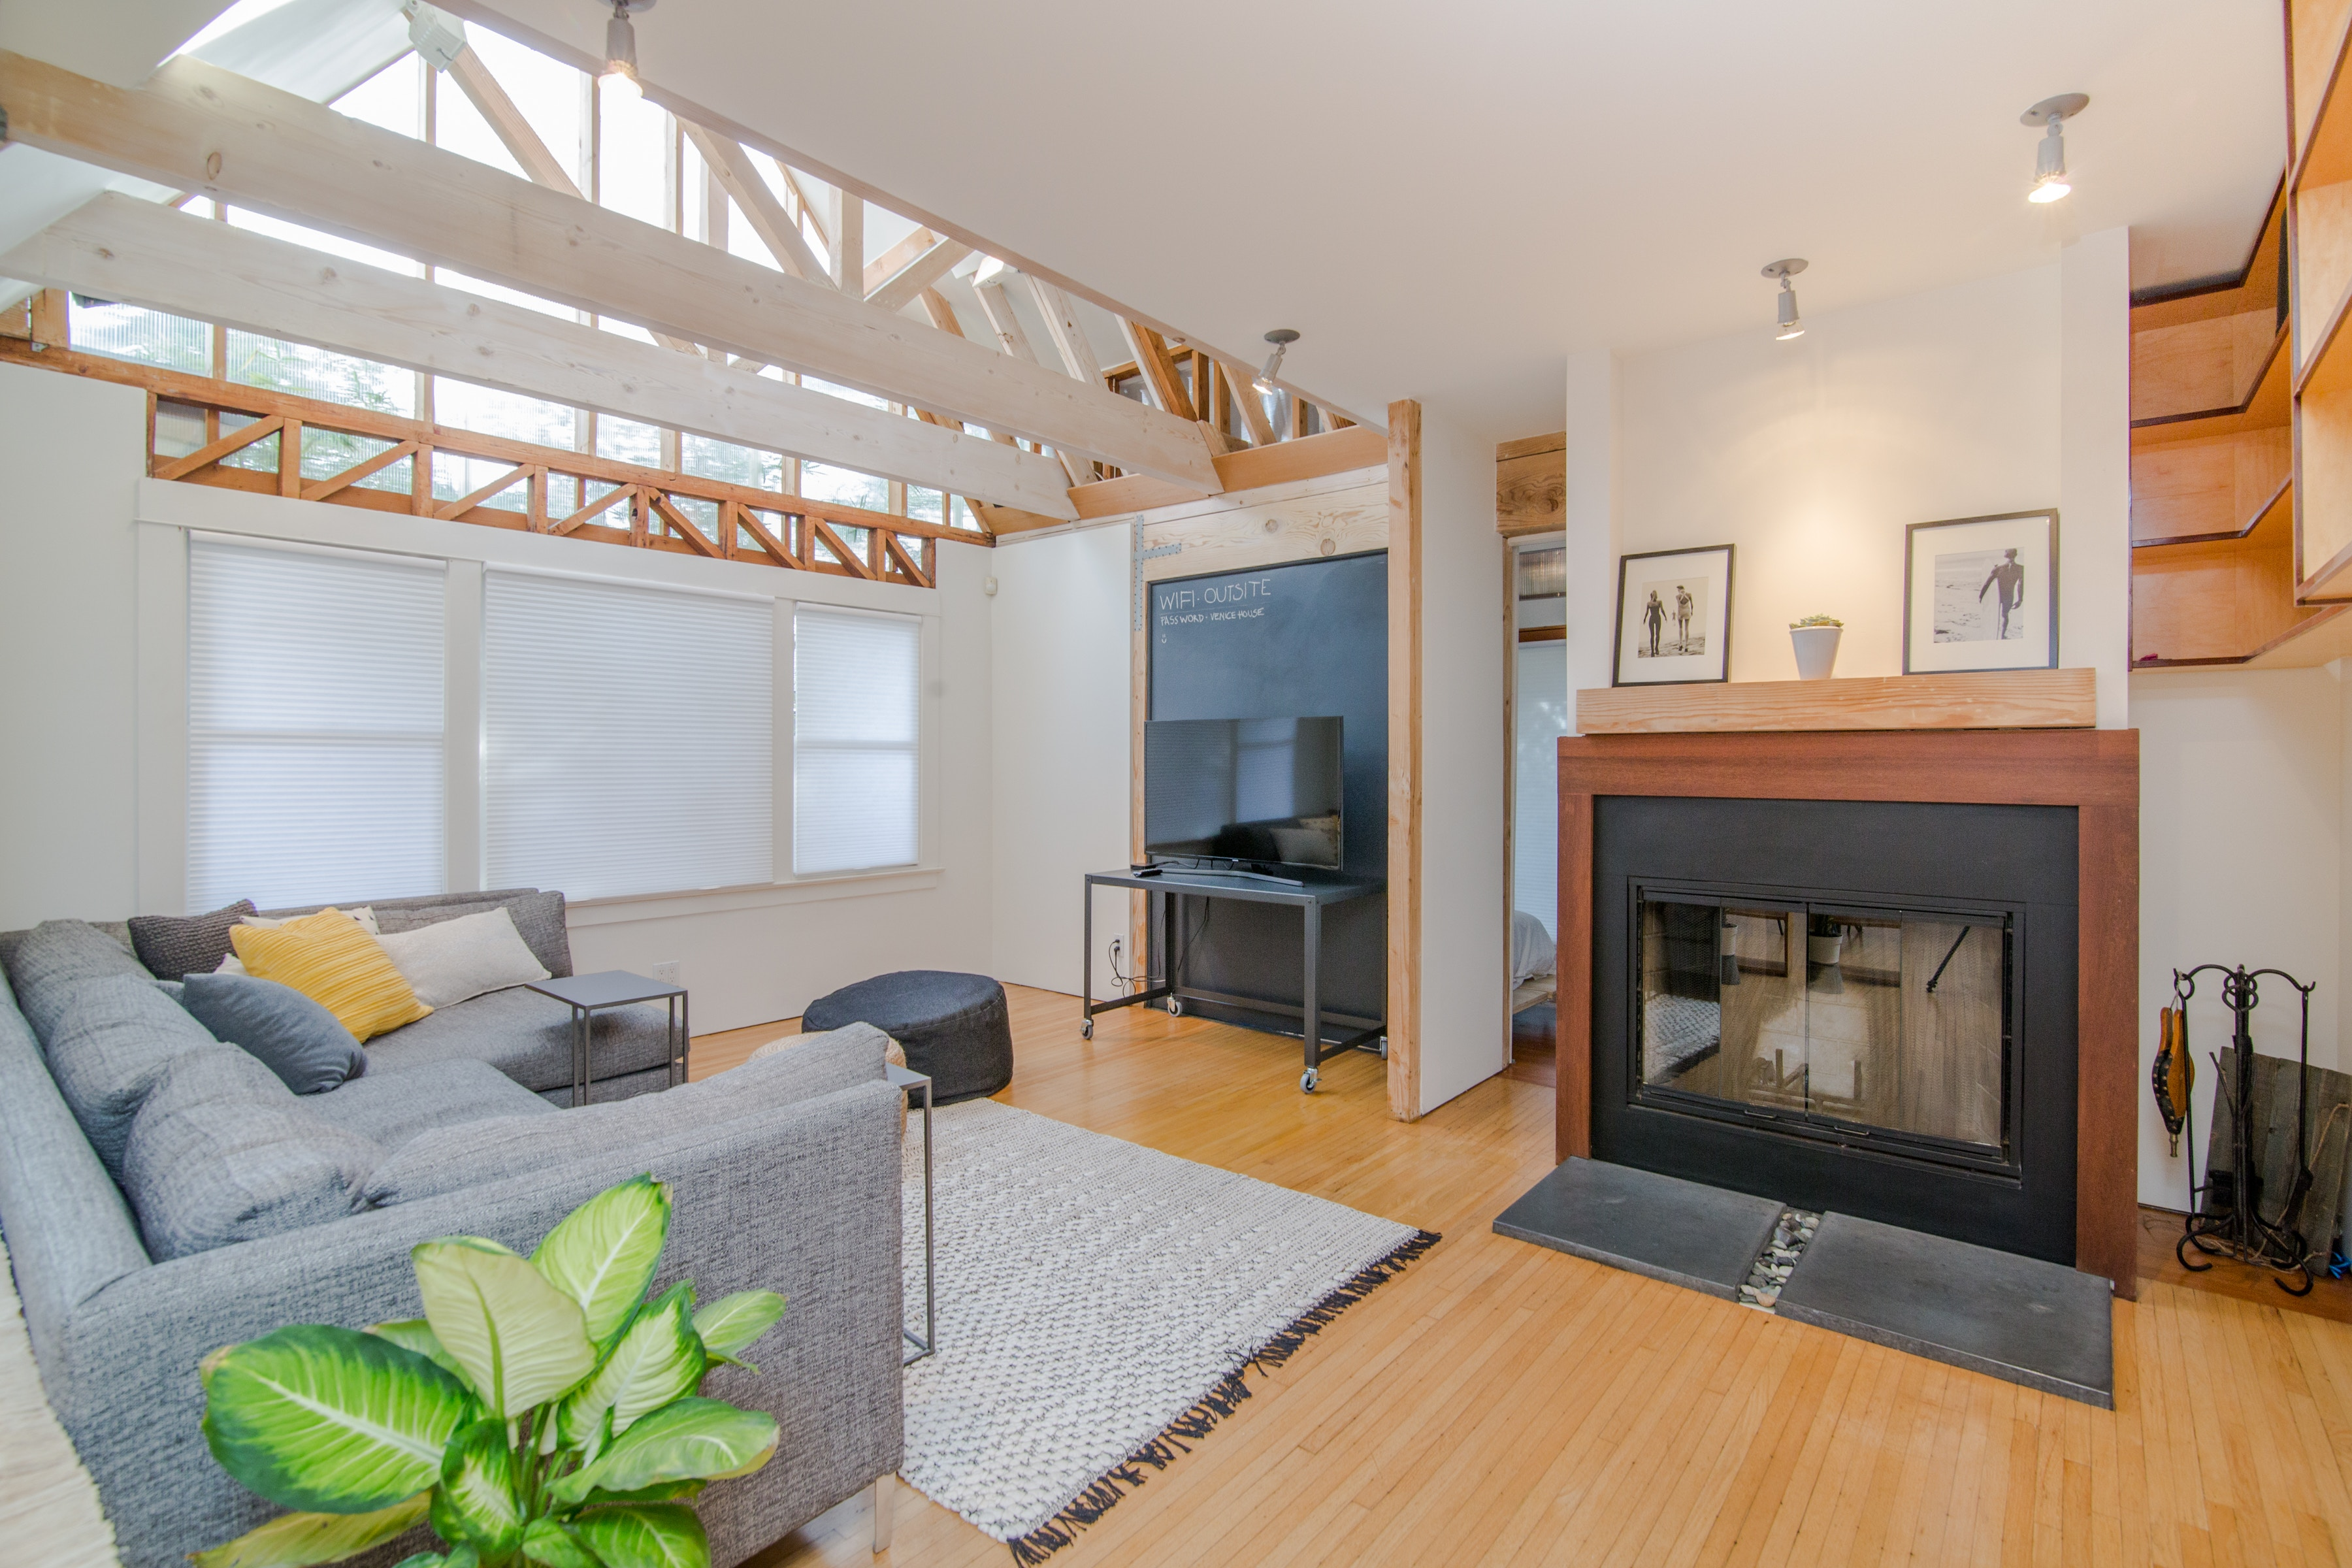 Interior of living space as designed by home improvement contractor